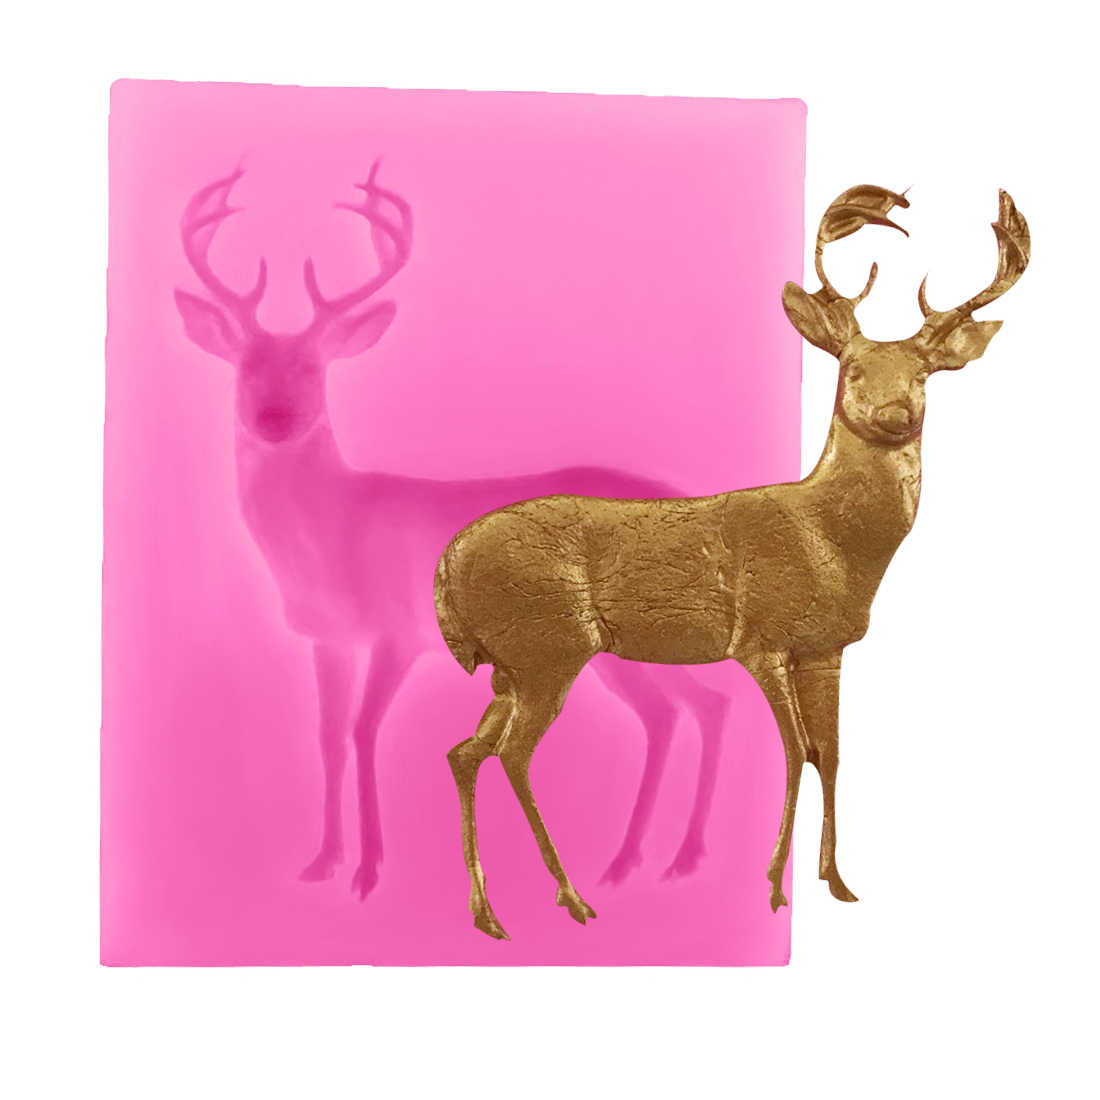 1PC Silicone Christmas Deer Shape Mold Soap Mould Cake Decorating Chocolate Stencils Fondant Pastry Baking Kitchen Accessories